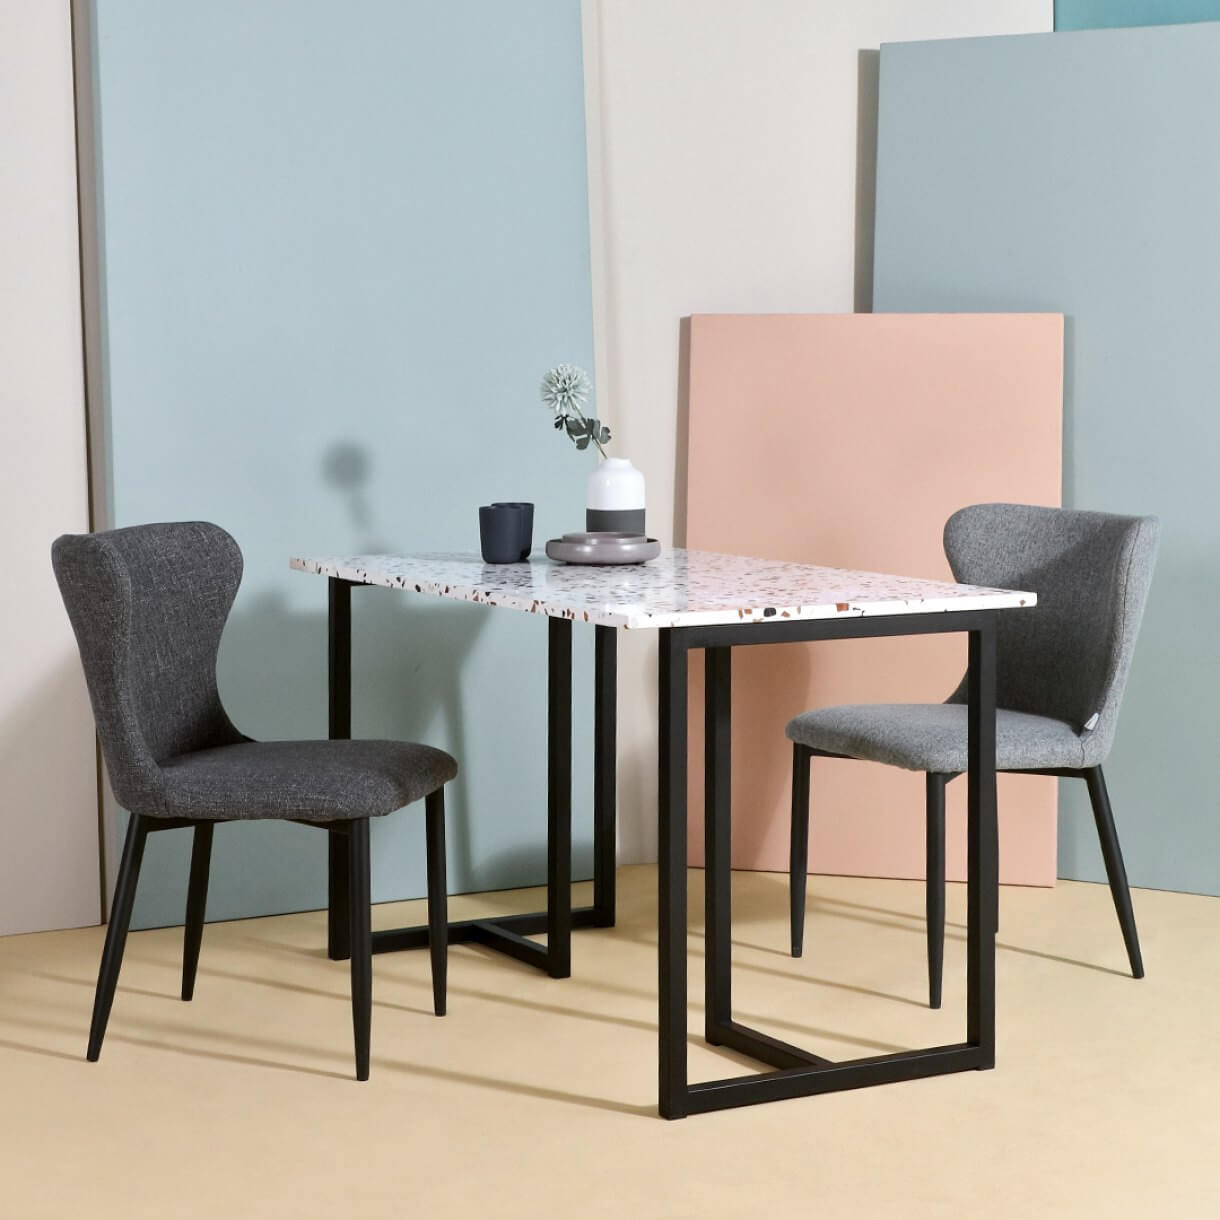 Try Out Vintage Furniture Trends with Ricky Terrazzo Dining Table - Comfort Furniture